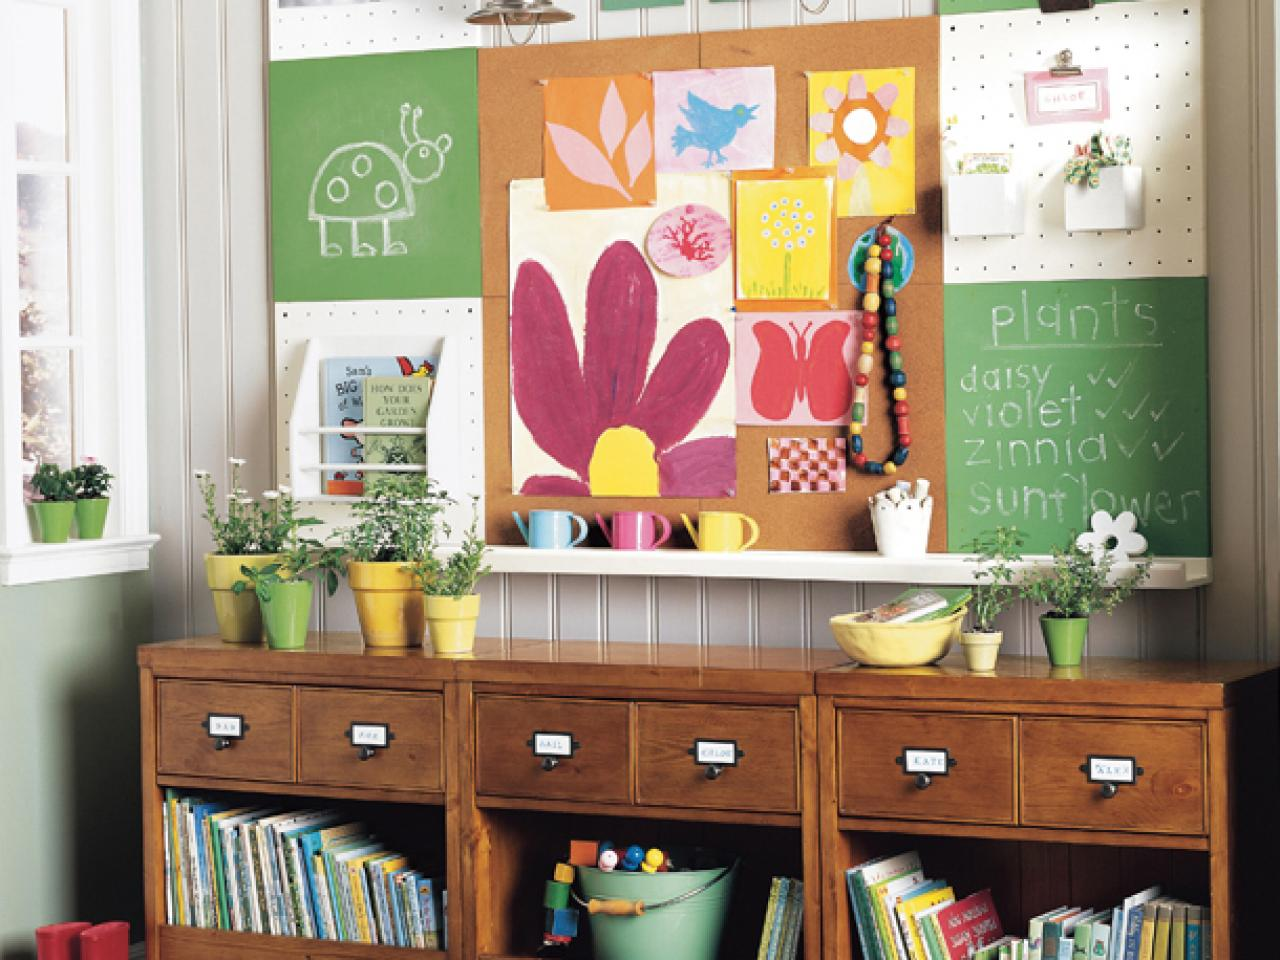 New kids room decorating ideas 10 decorating ideas for kidsu0027 rooms iwlokjt